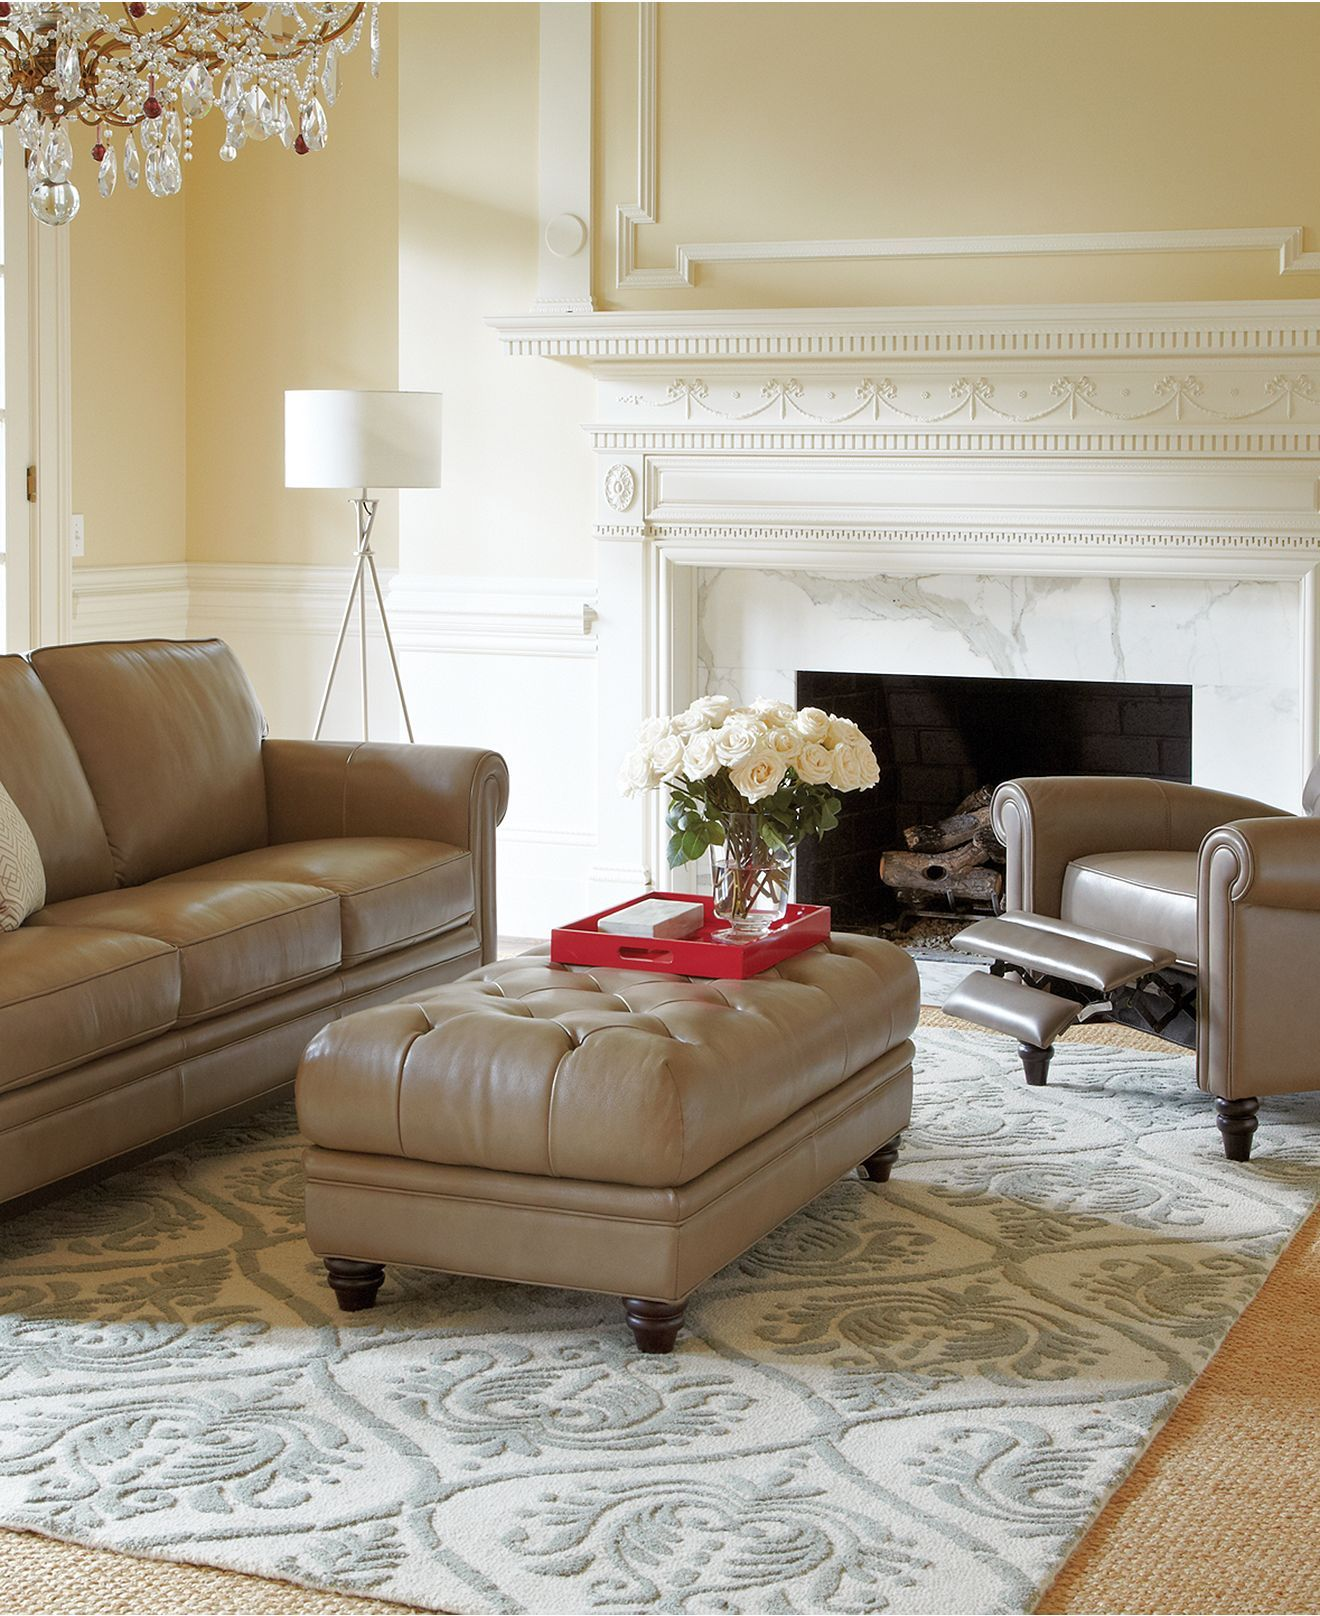 Martha Stewart Leather Living Room Furniture Sets & Pieces Bradyn